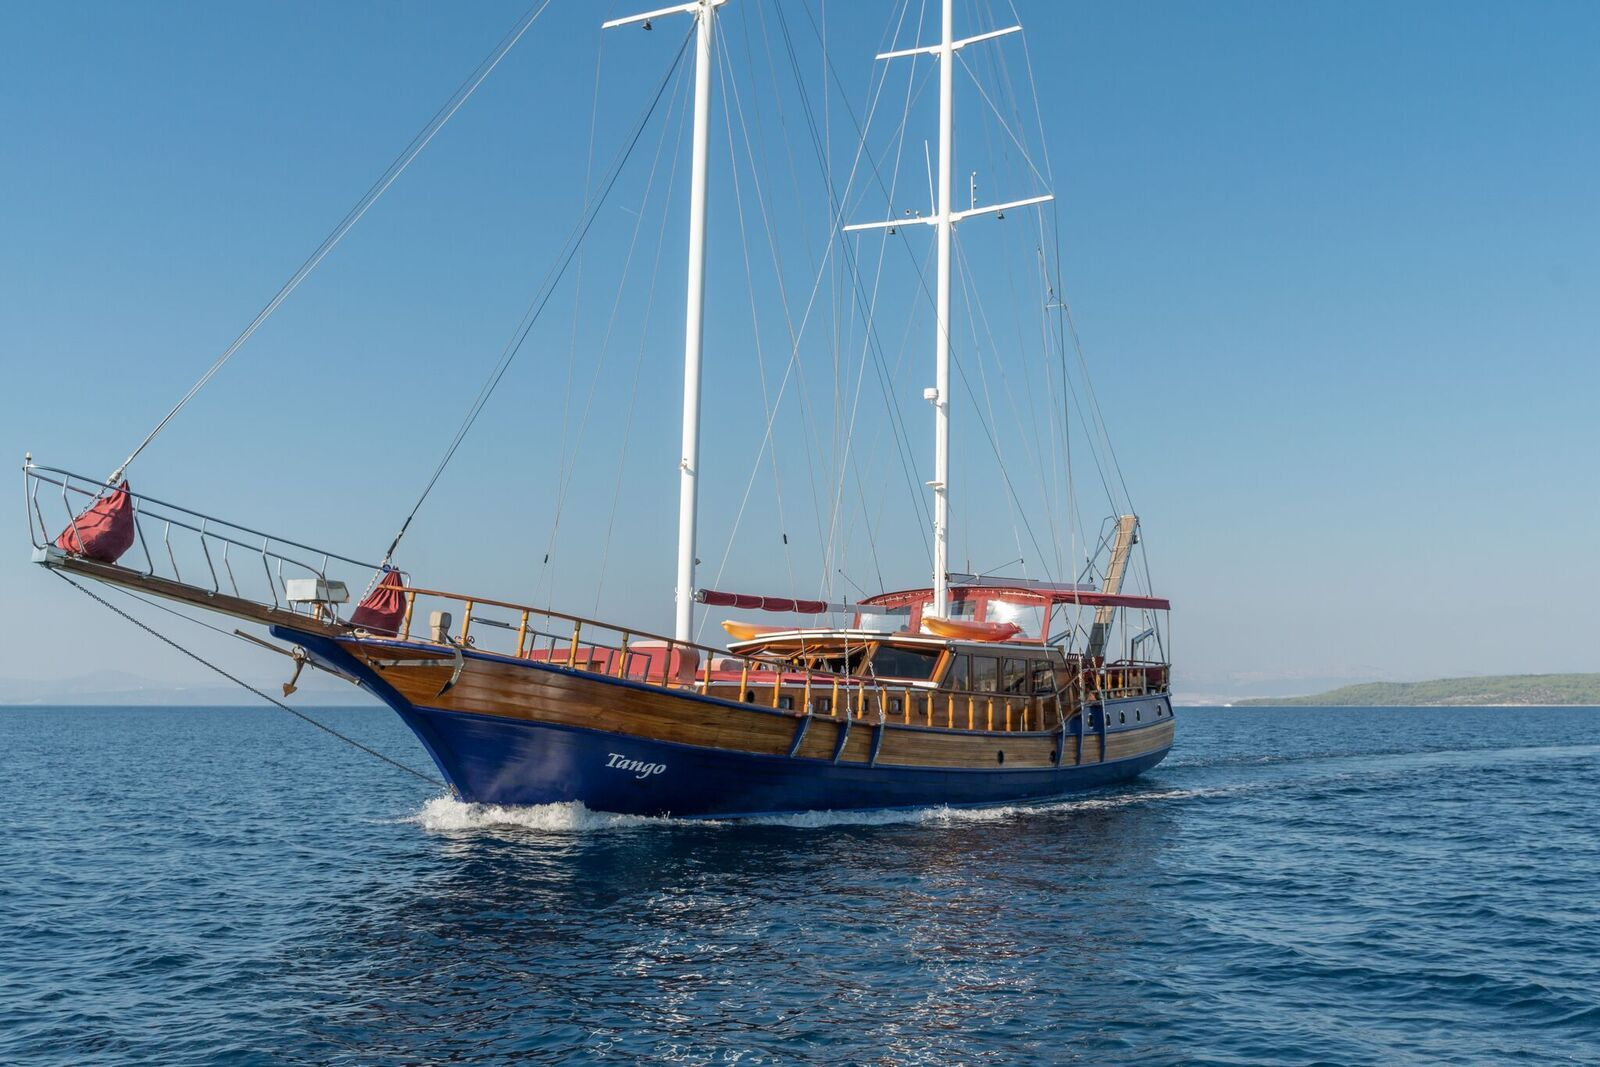 Gulet Tango Holiday Charter, Croatia Sailing